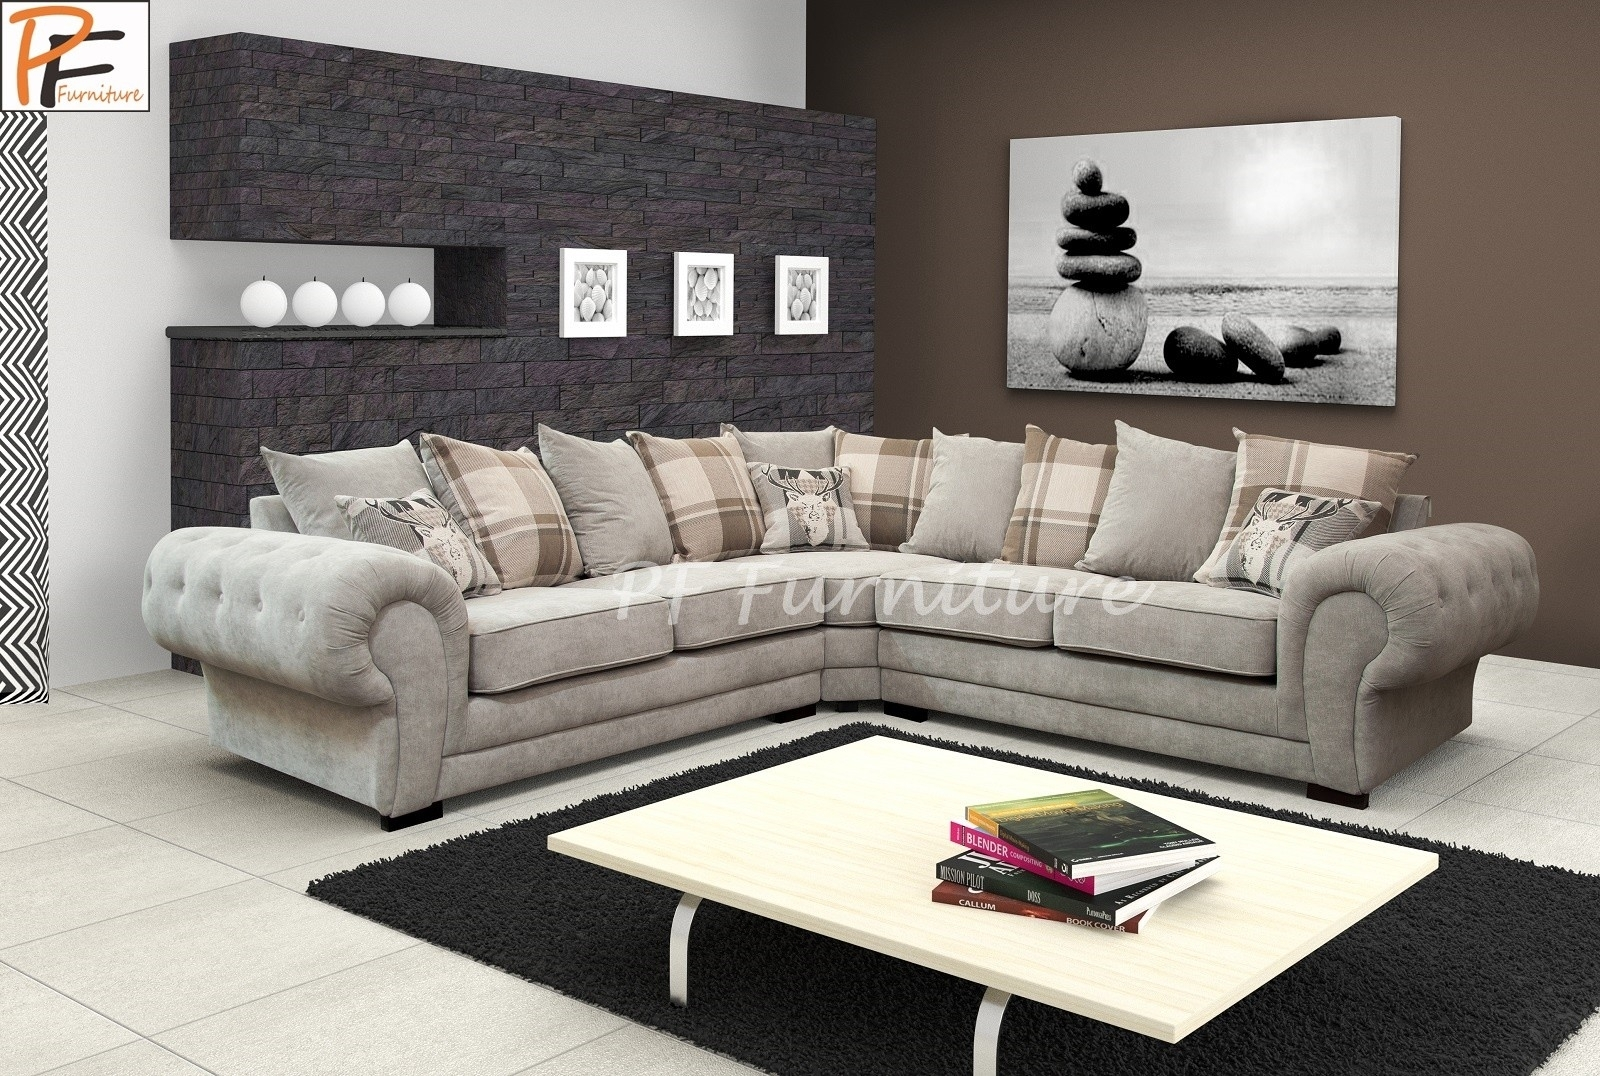 How To Decorate Your Living Room With Fabric Corner Sofa Throughout Fabric Corner Sofas (View 2 of 10)